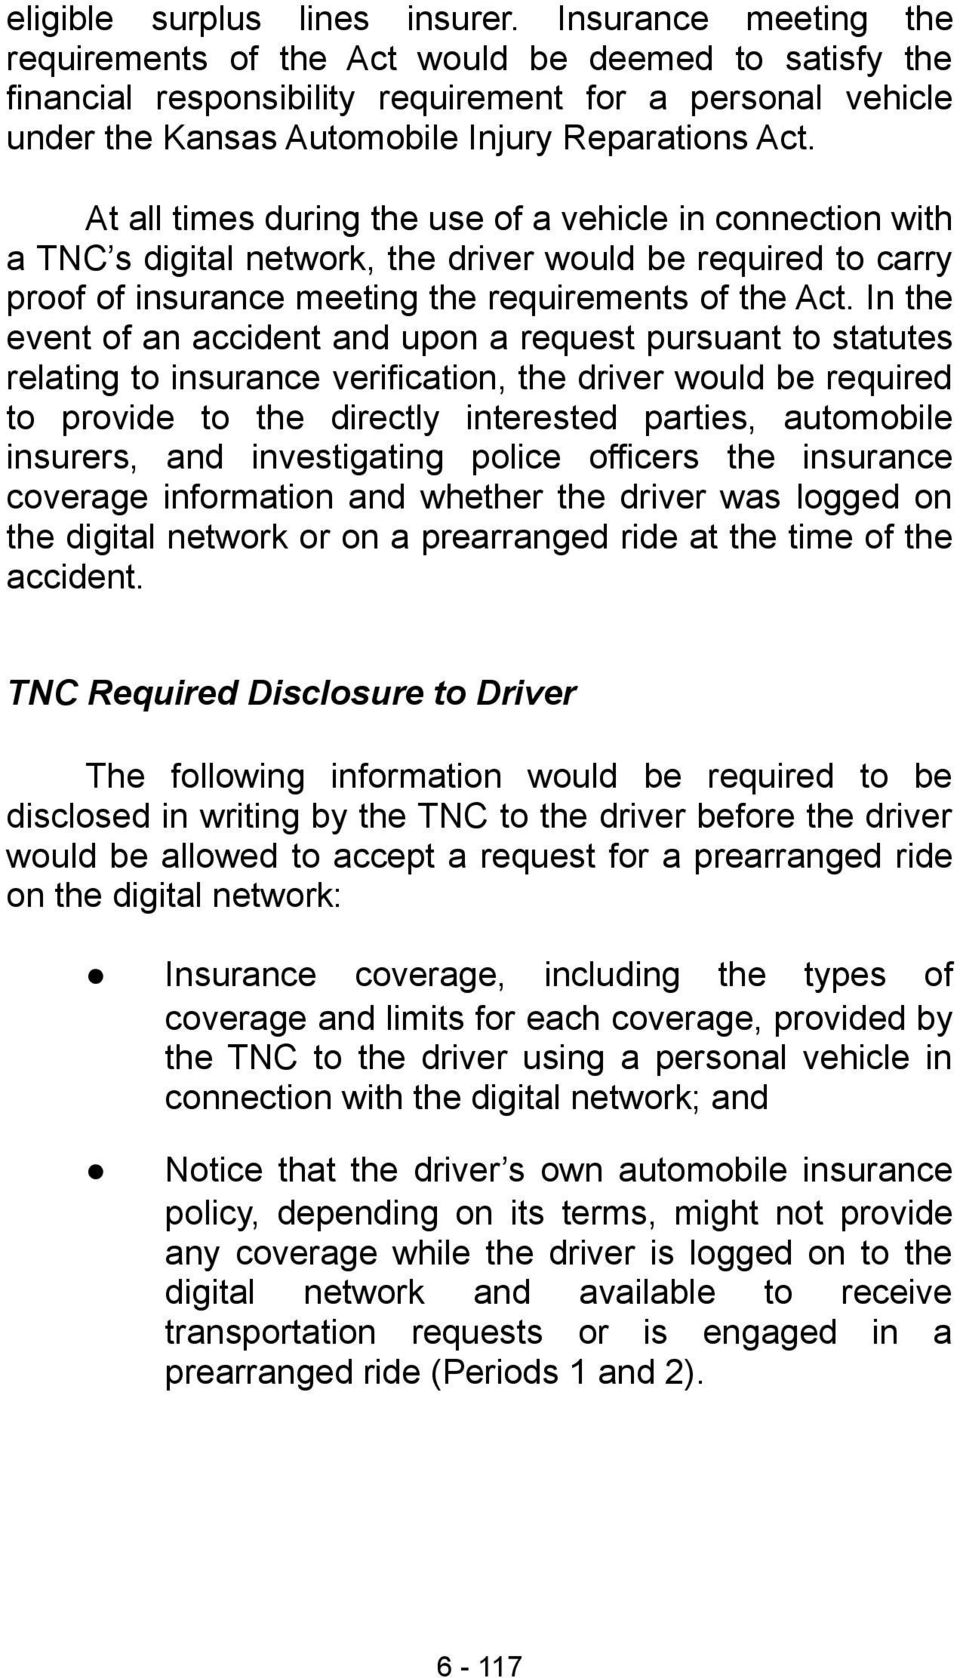 At all times during the use of a vehicle in connection with a TNC s digital network, the driver would be required to carry proof of insurance meeting the requirements of the Act.